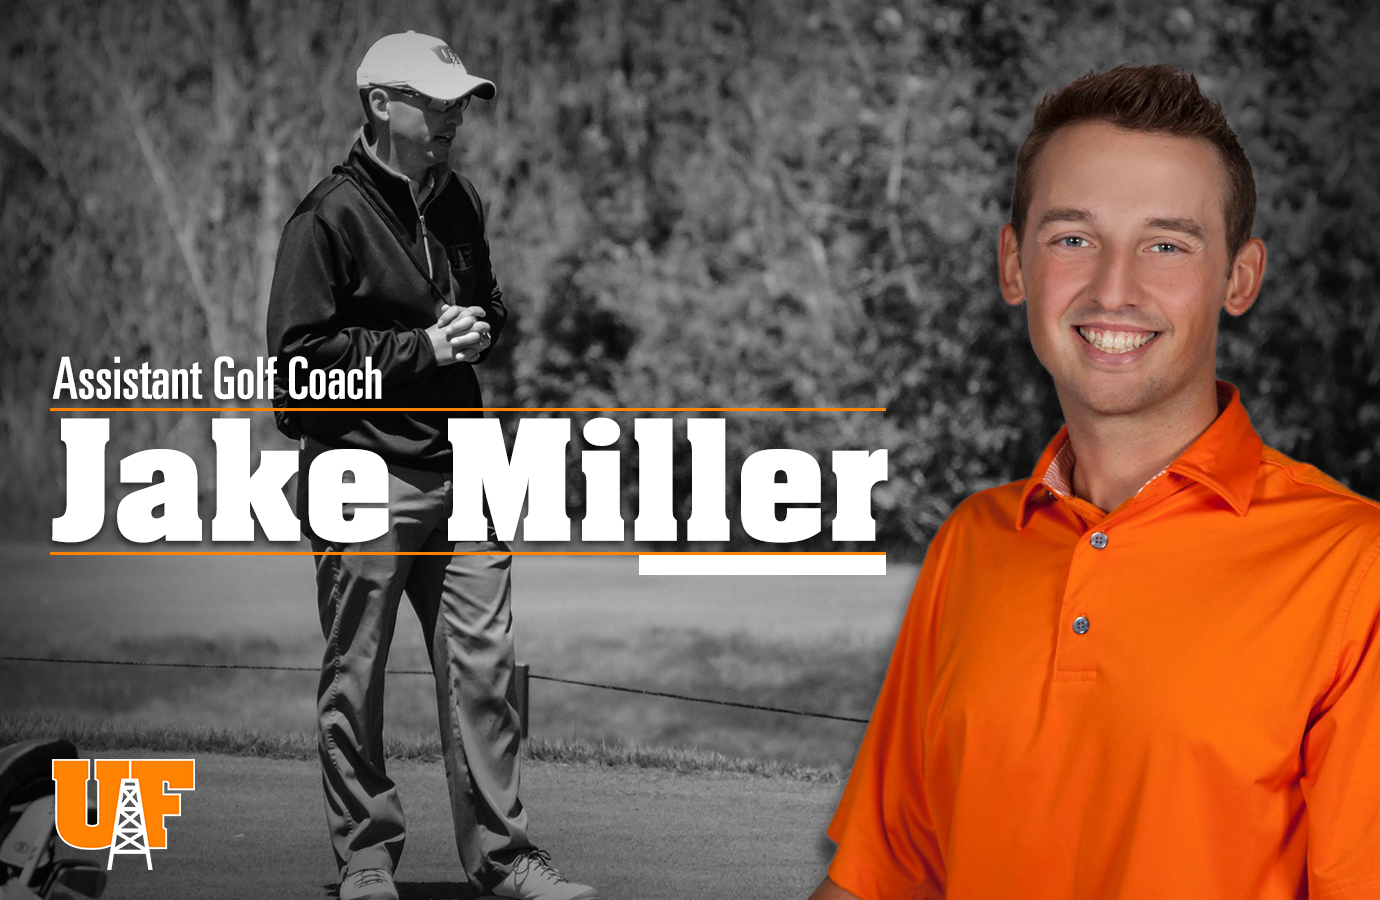 Jake Miller Hired as Assistant Golf Coach